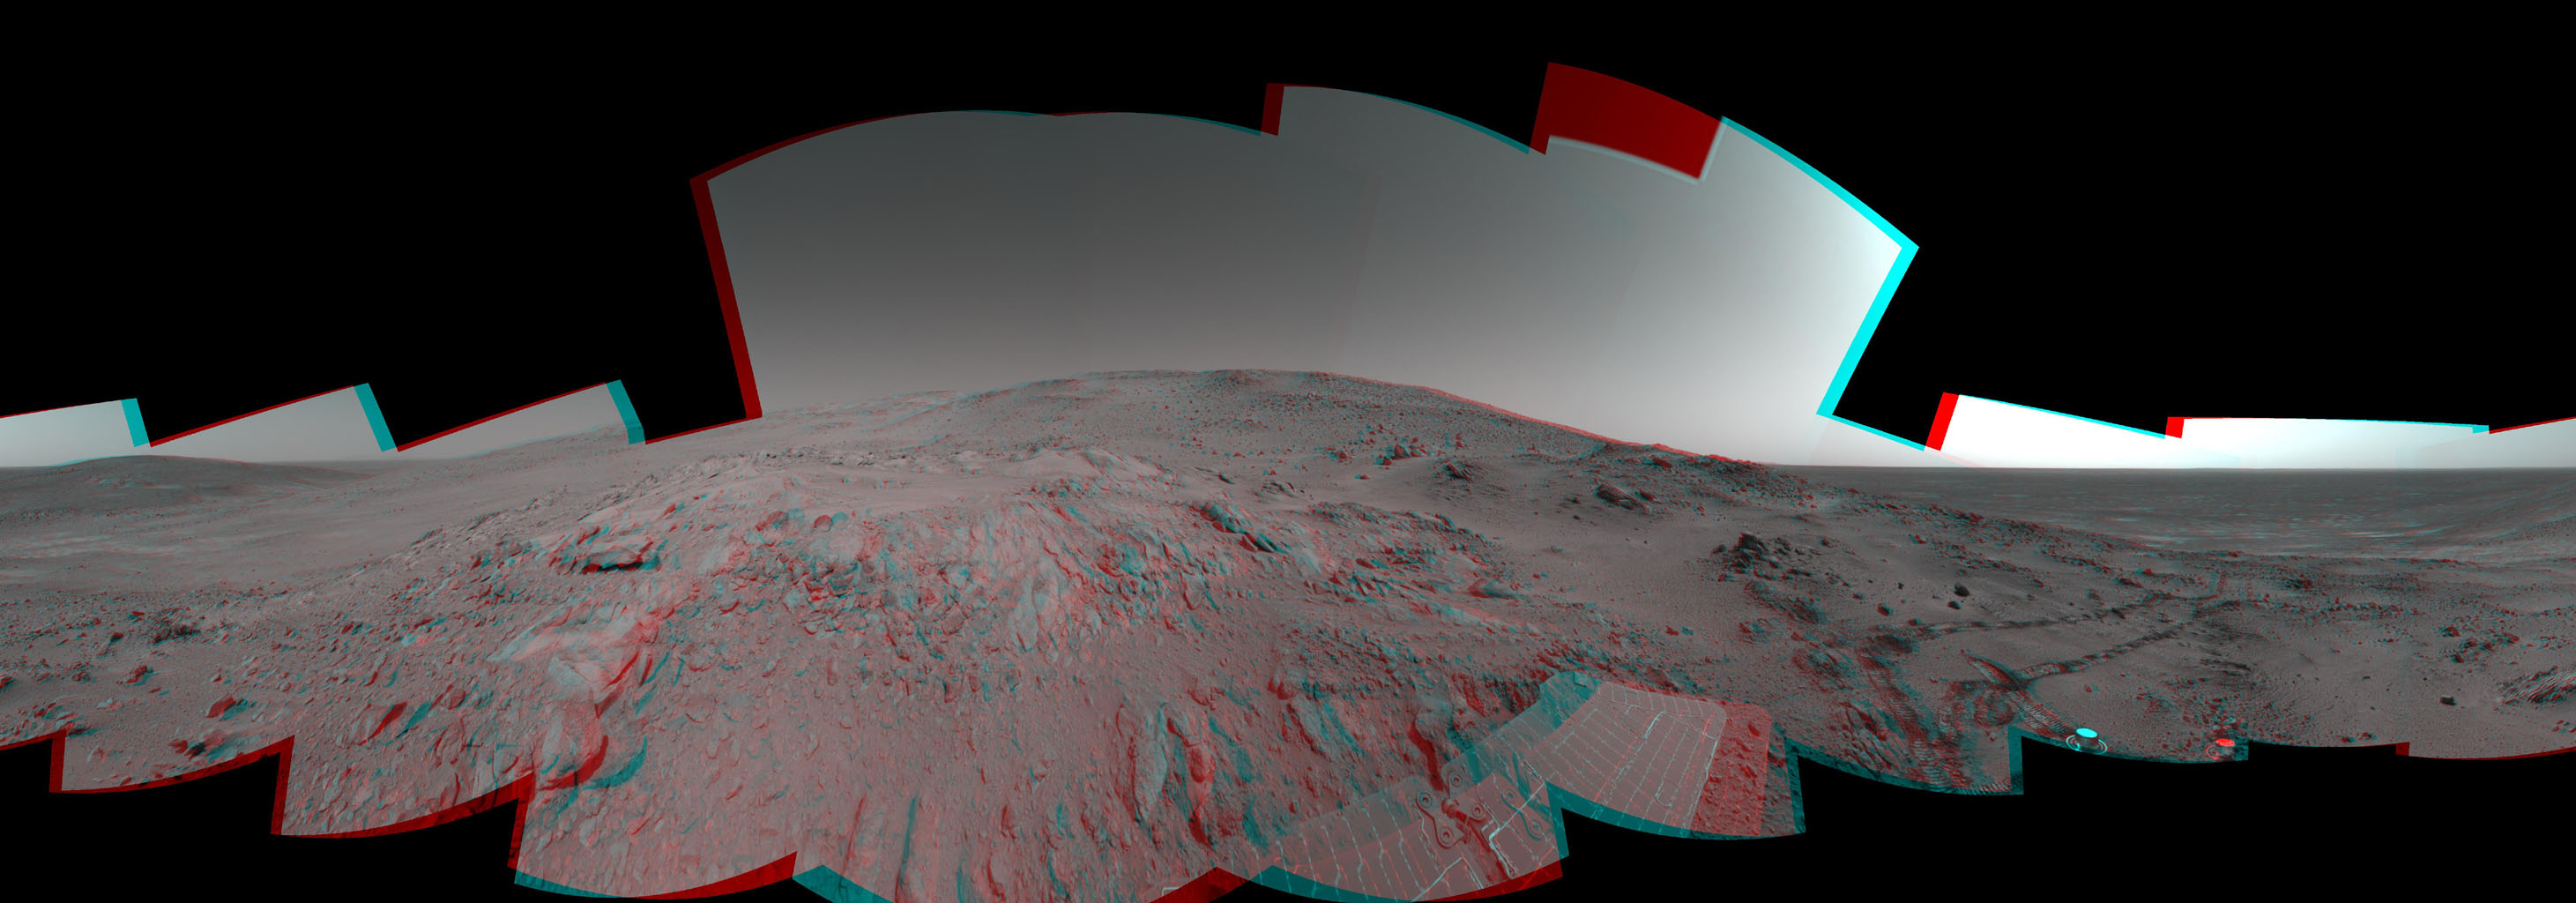 On Feb. 26, 2005, NASA's Mars Exploration Rover Spirit had drive 2 meters (7 feet) on this sol to get in position on 'Cumberland Ridge' for looking into 'Tennessee Valley' to the east. 3-D glasses are necessary to view this image.